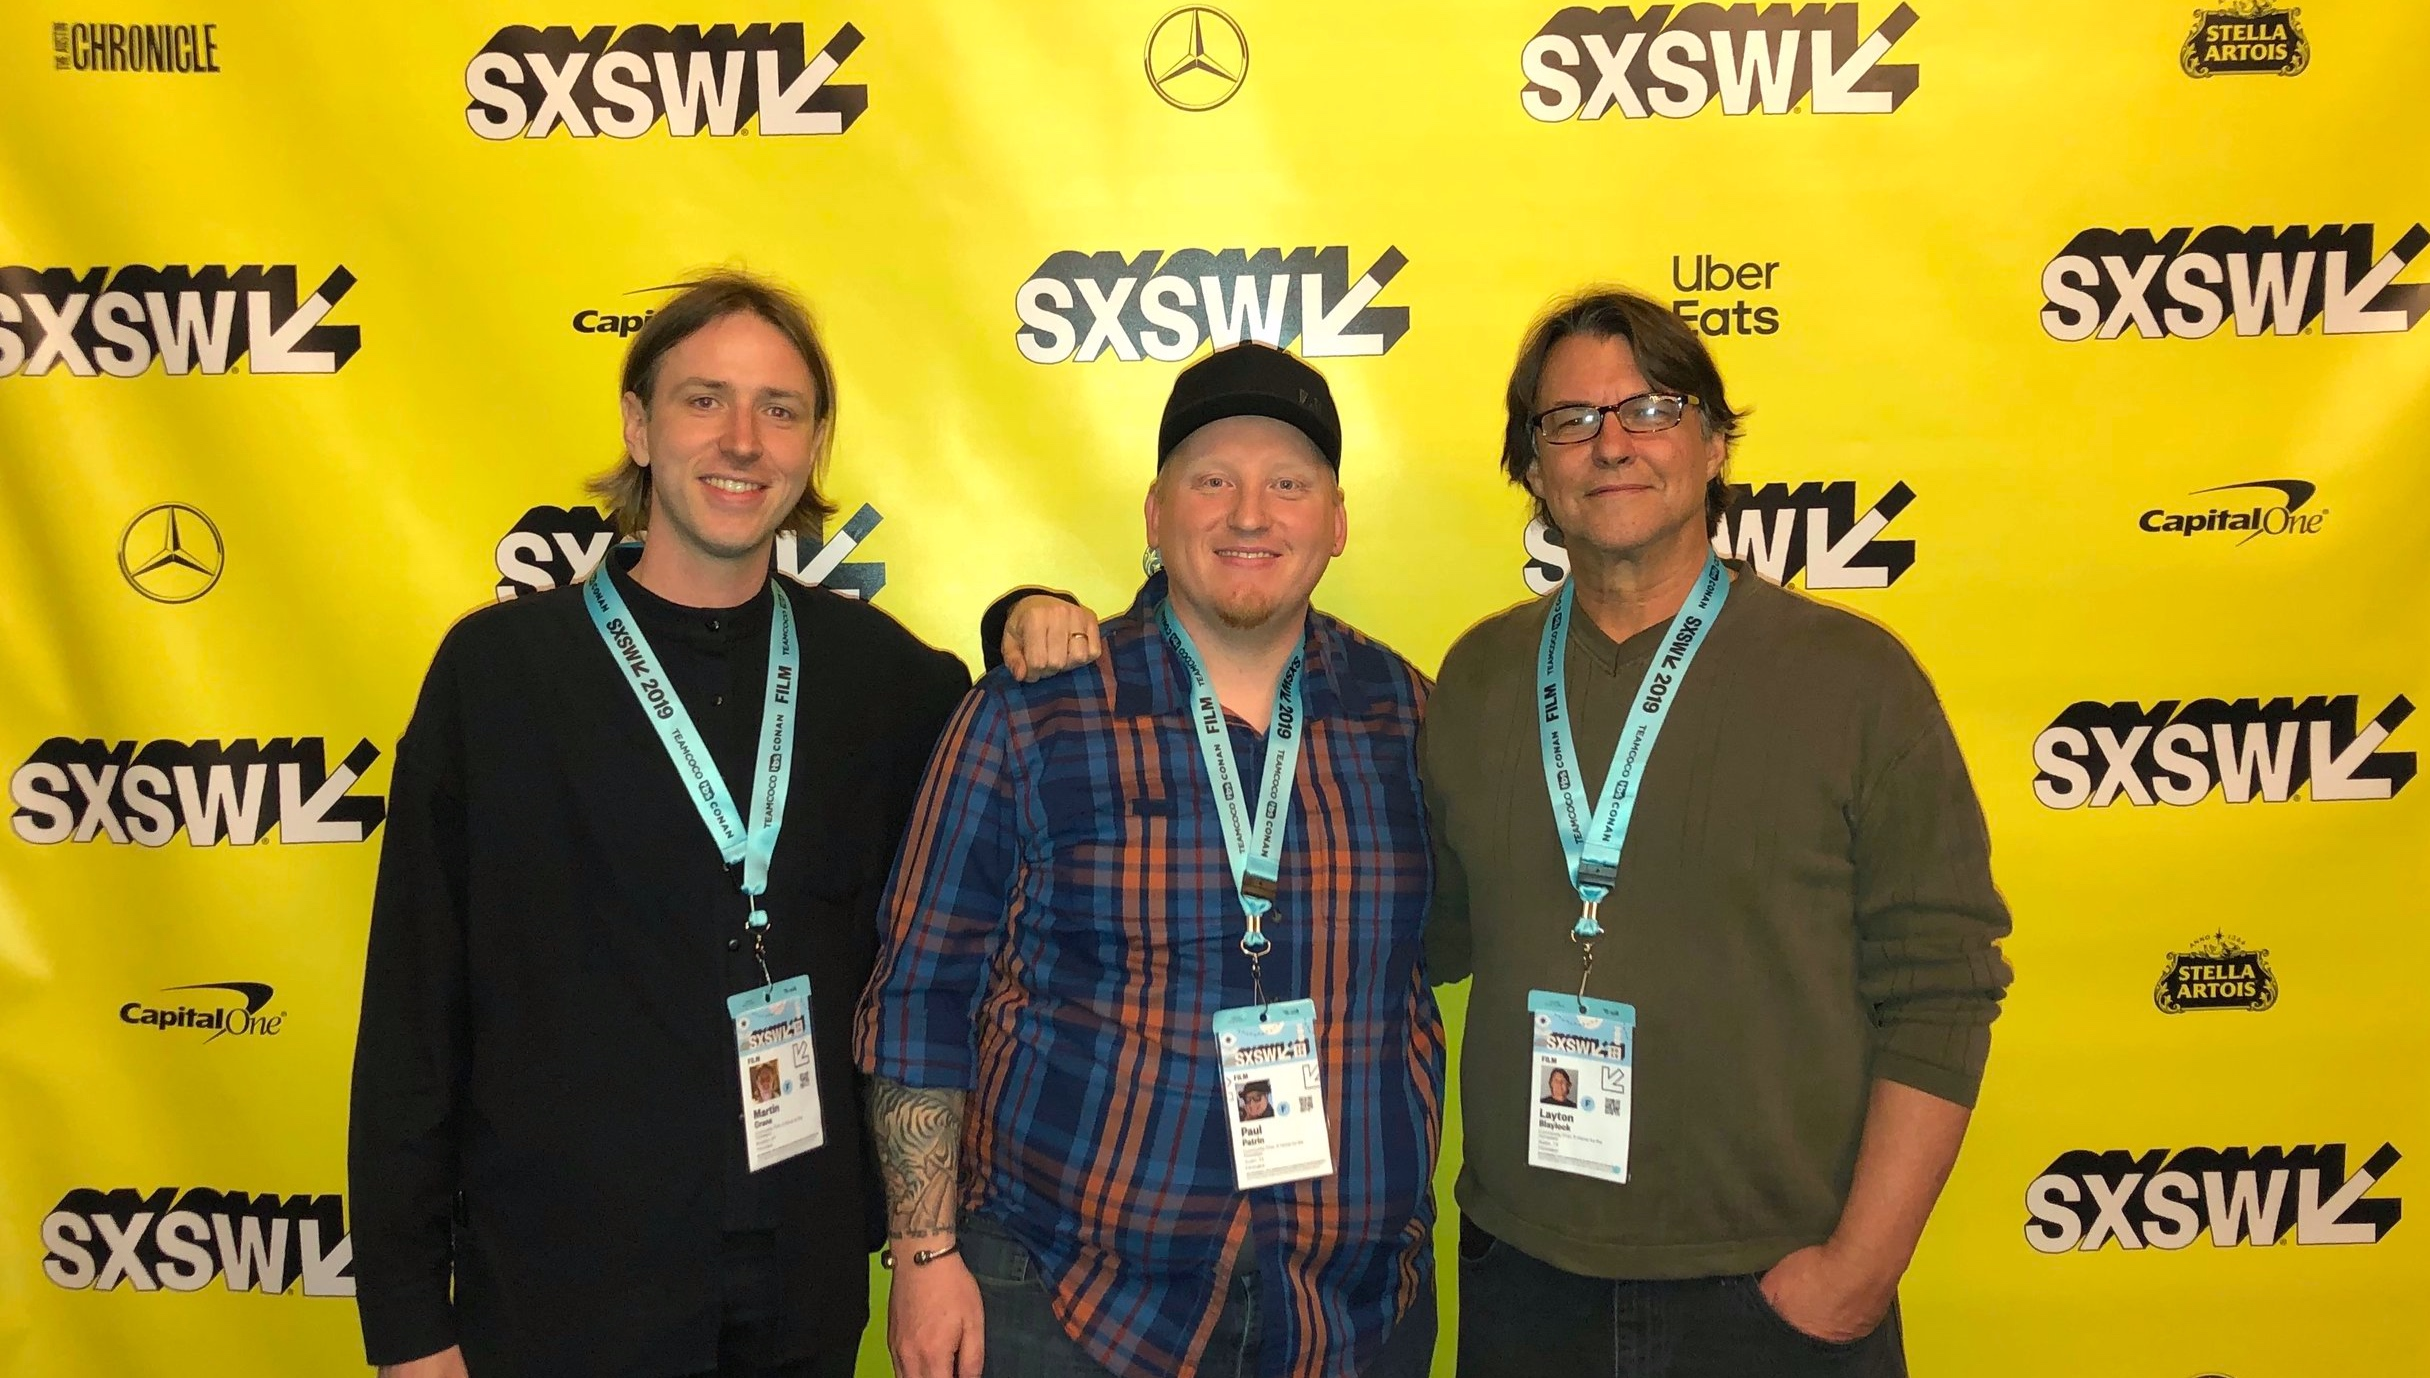 Martin, Paul, and Layton at SXSW screening. Photo by Leeann Funk